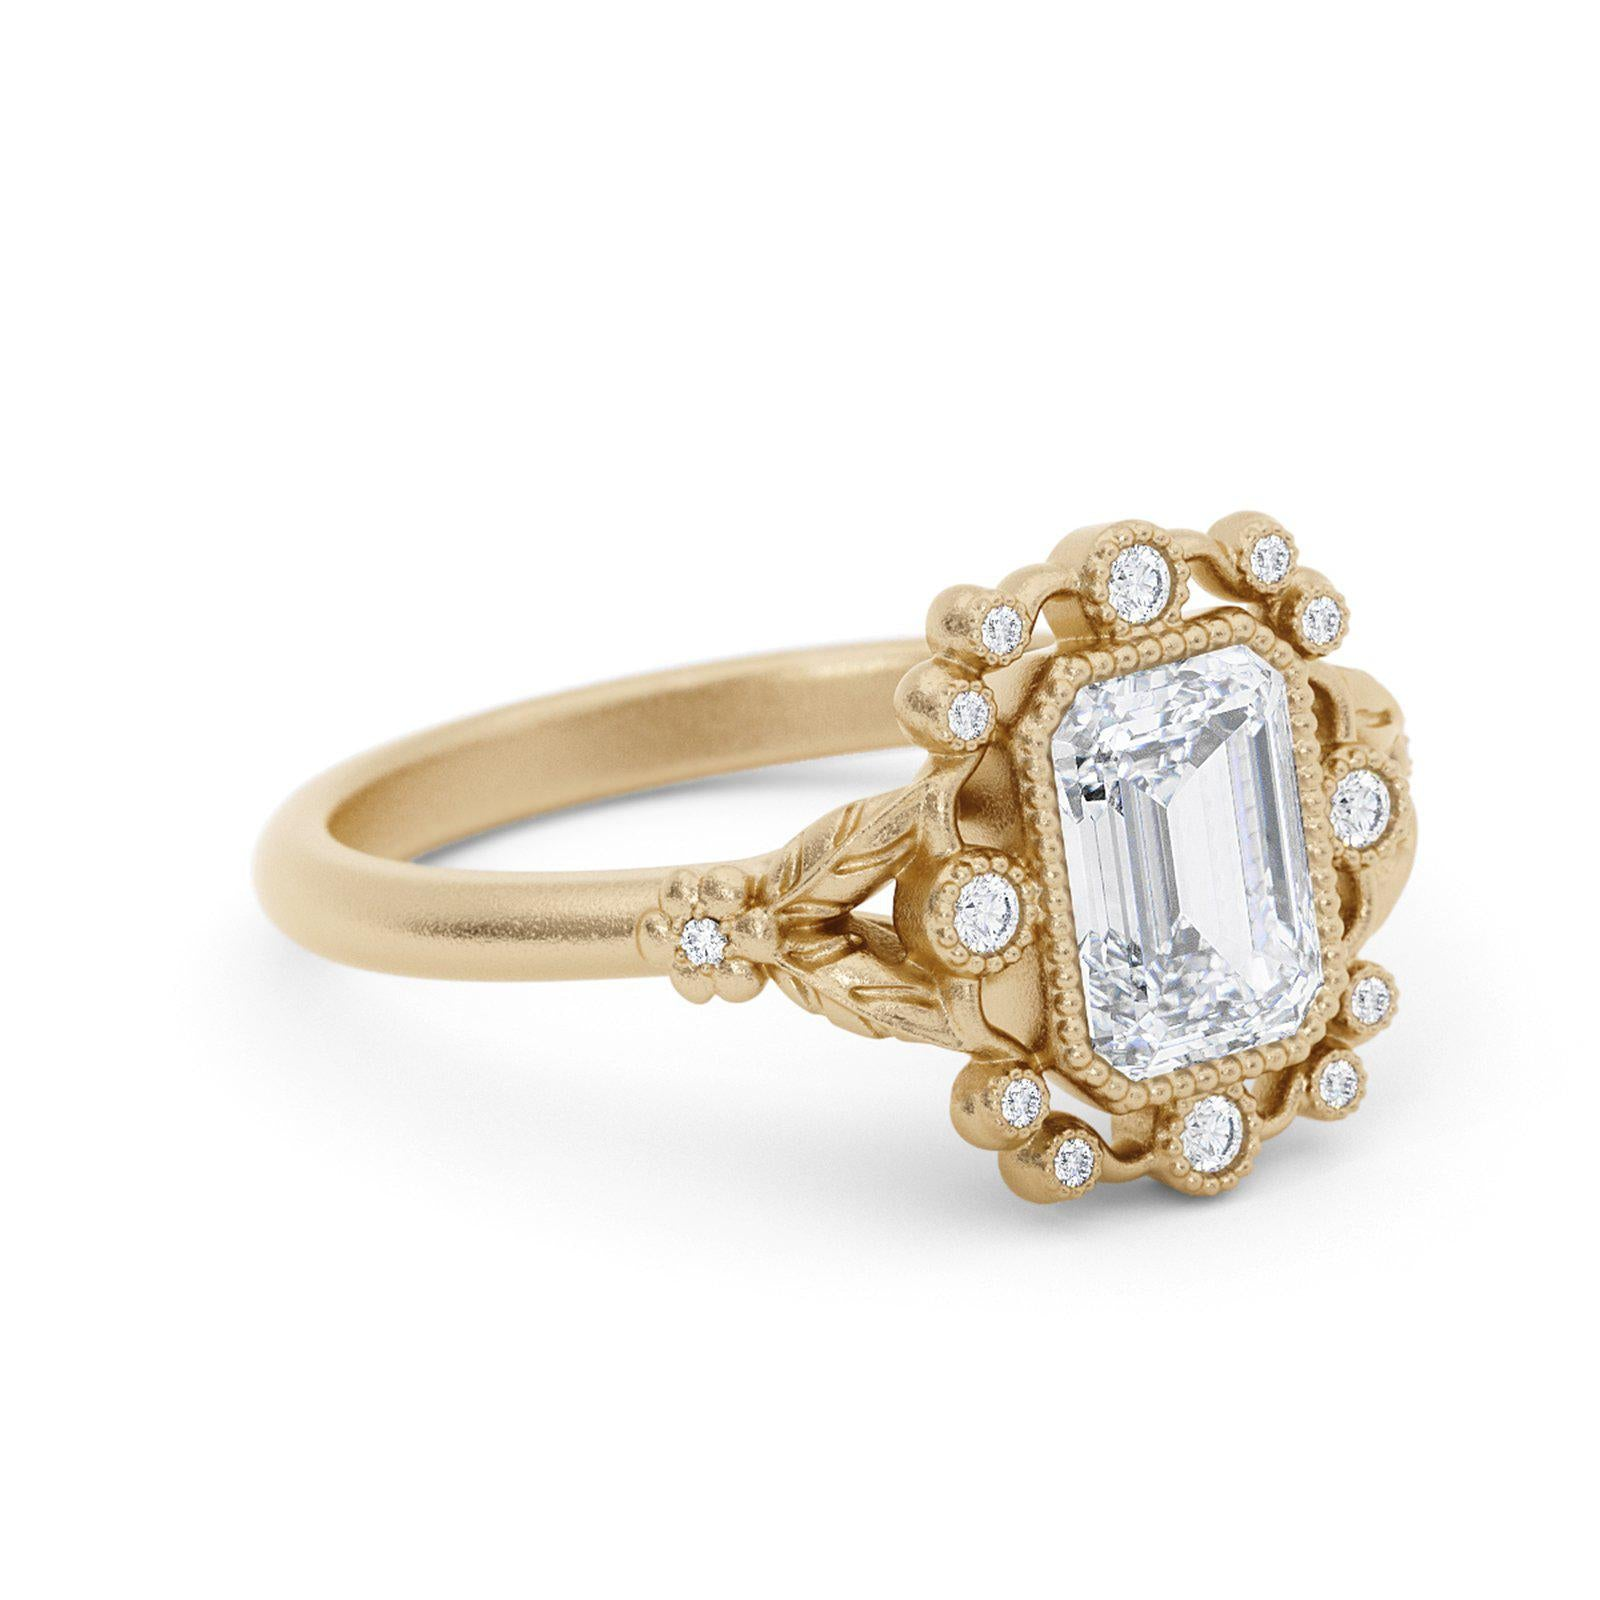 Mirabelle Diamond Bohemian Engagement Ring